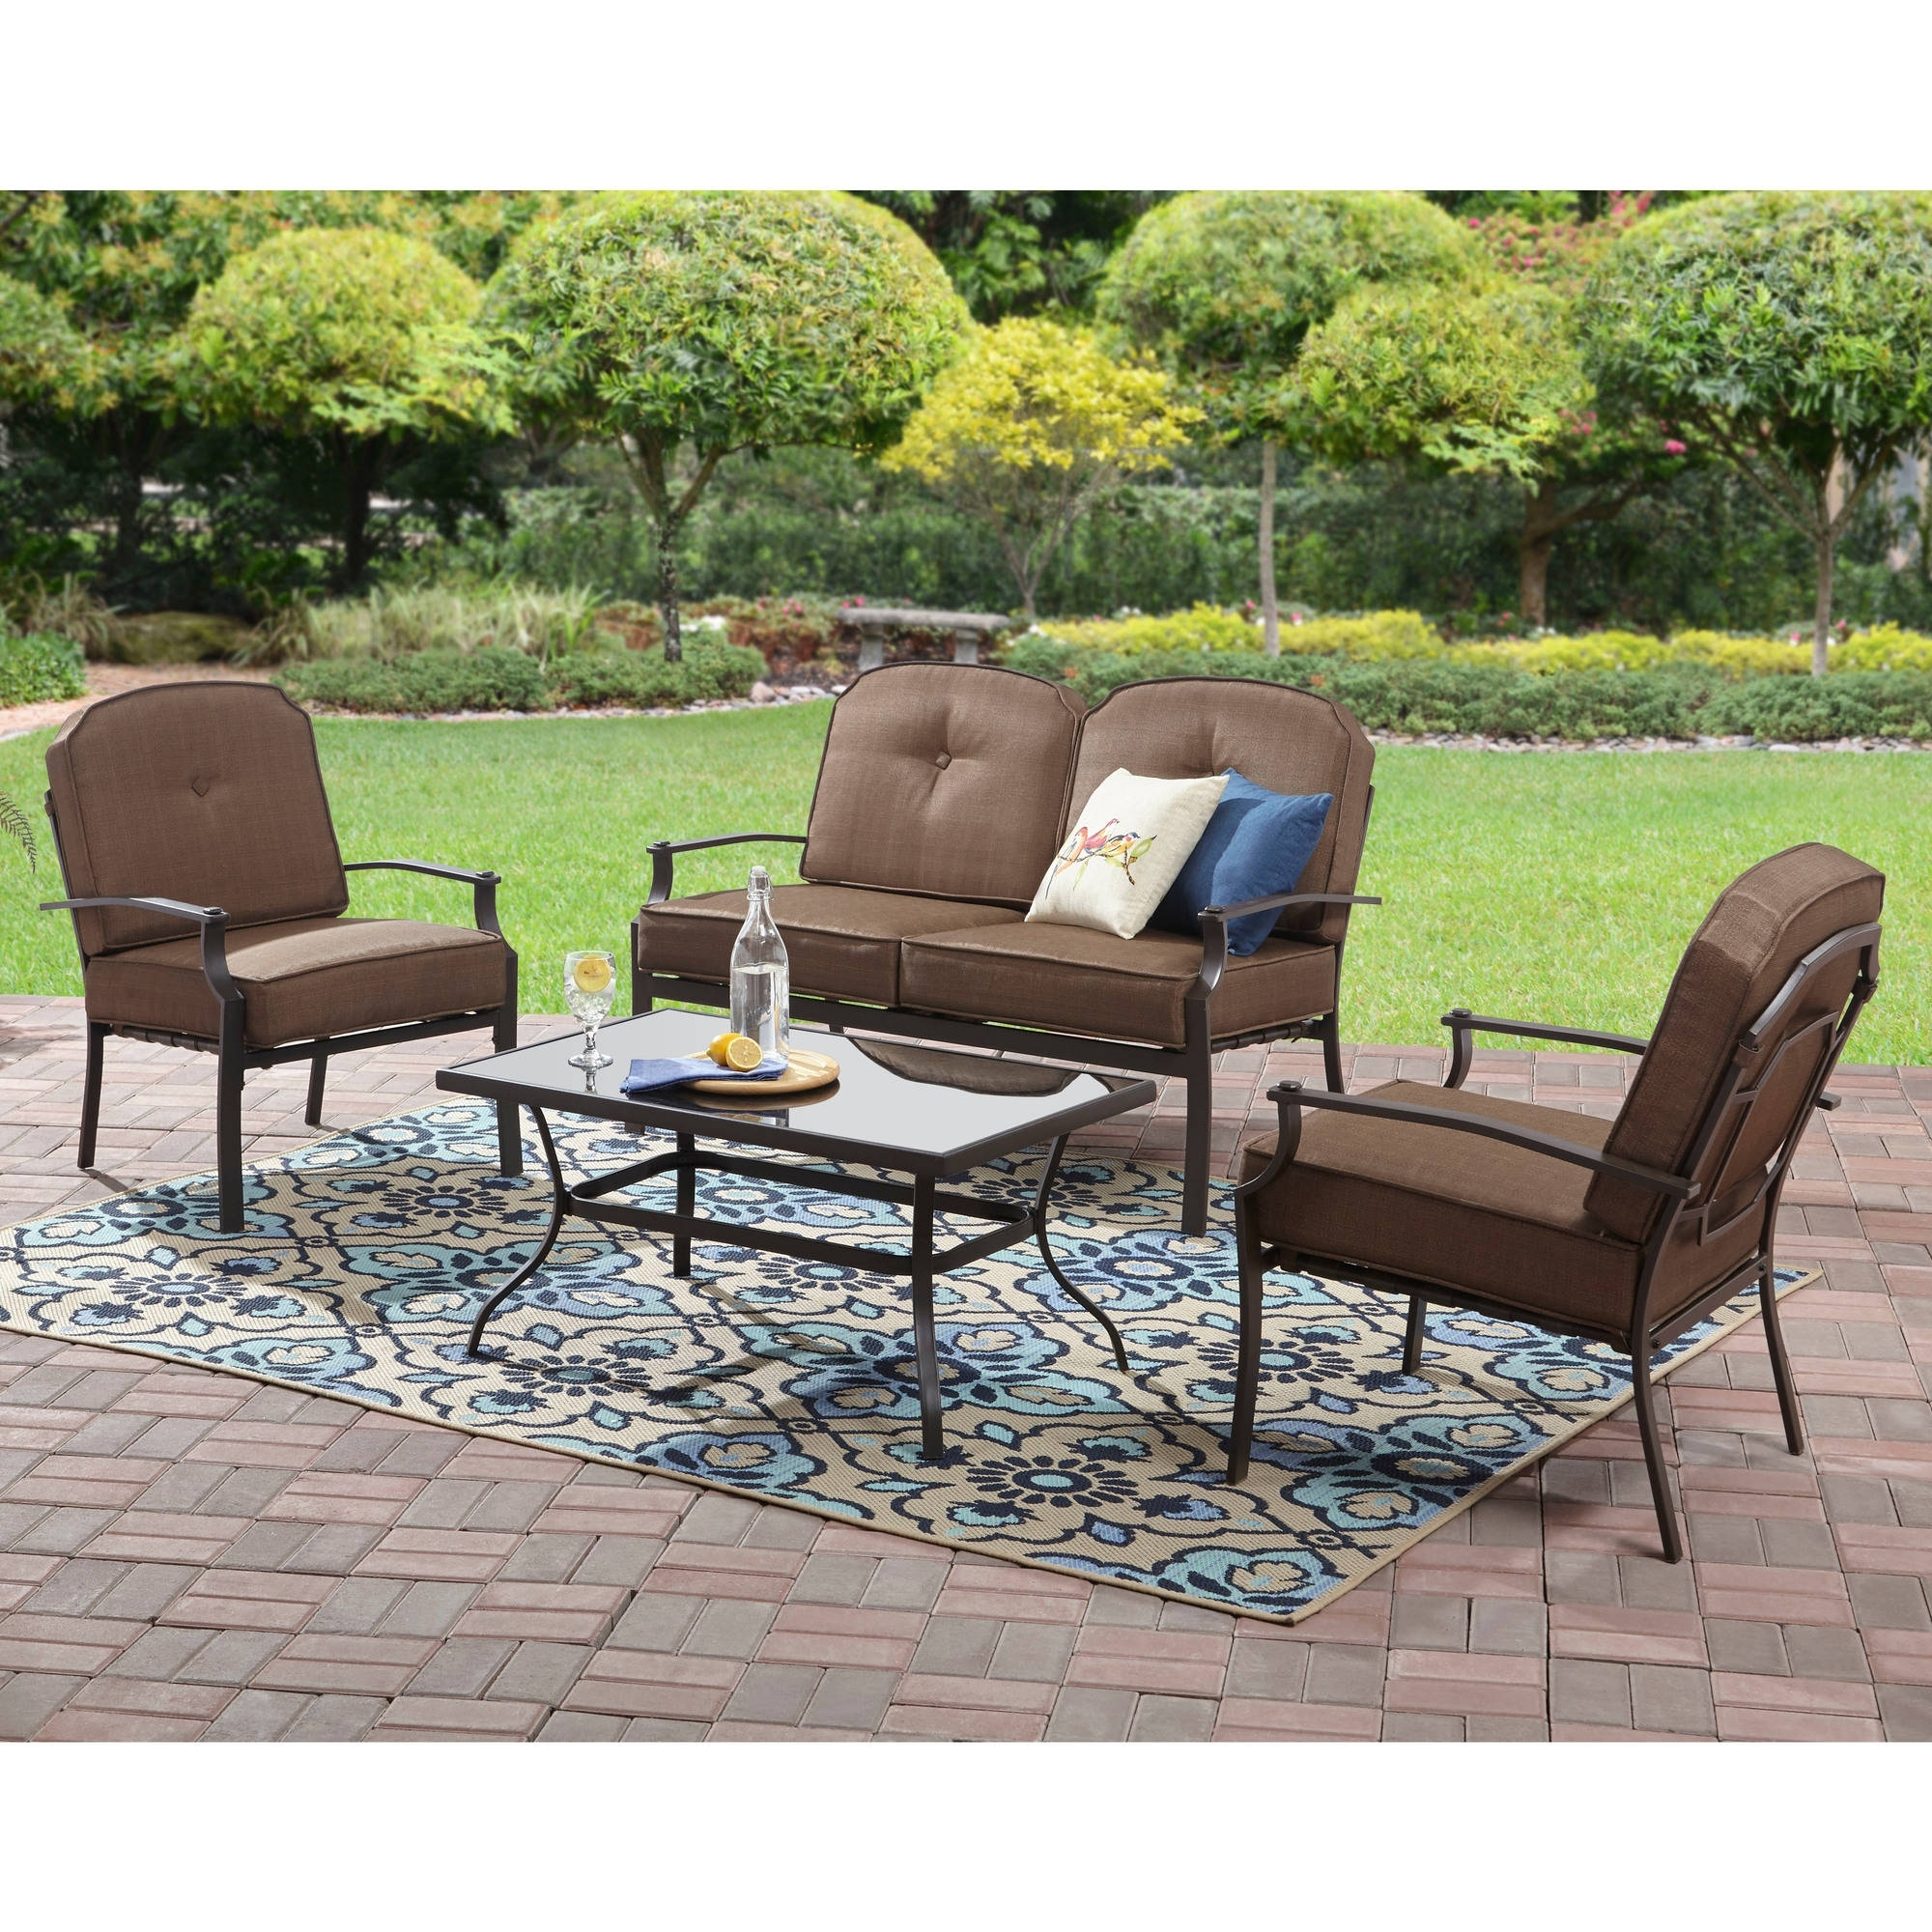 Latest Metal Patio Conversation Sets Throughout Mainstays Wentworth 4 Piece Patio Conversation Set, Seats (View 10 of 20)